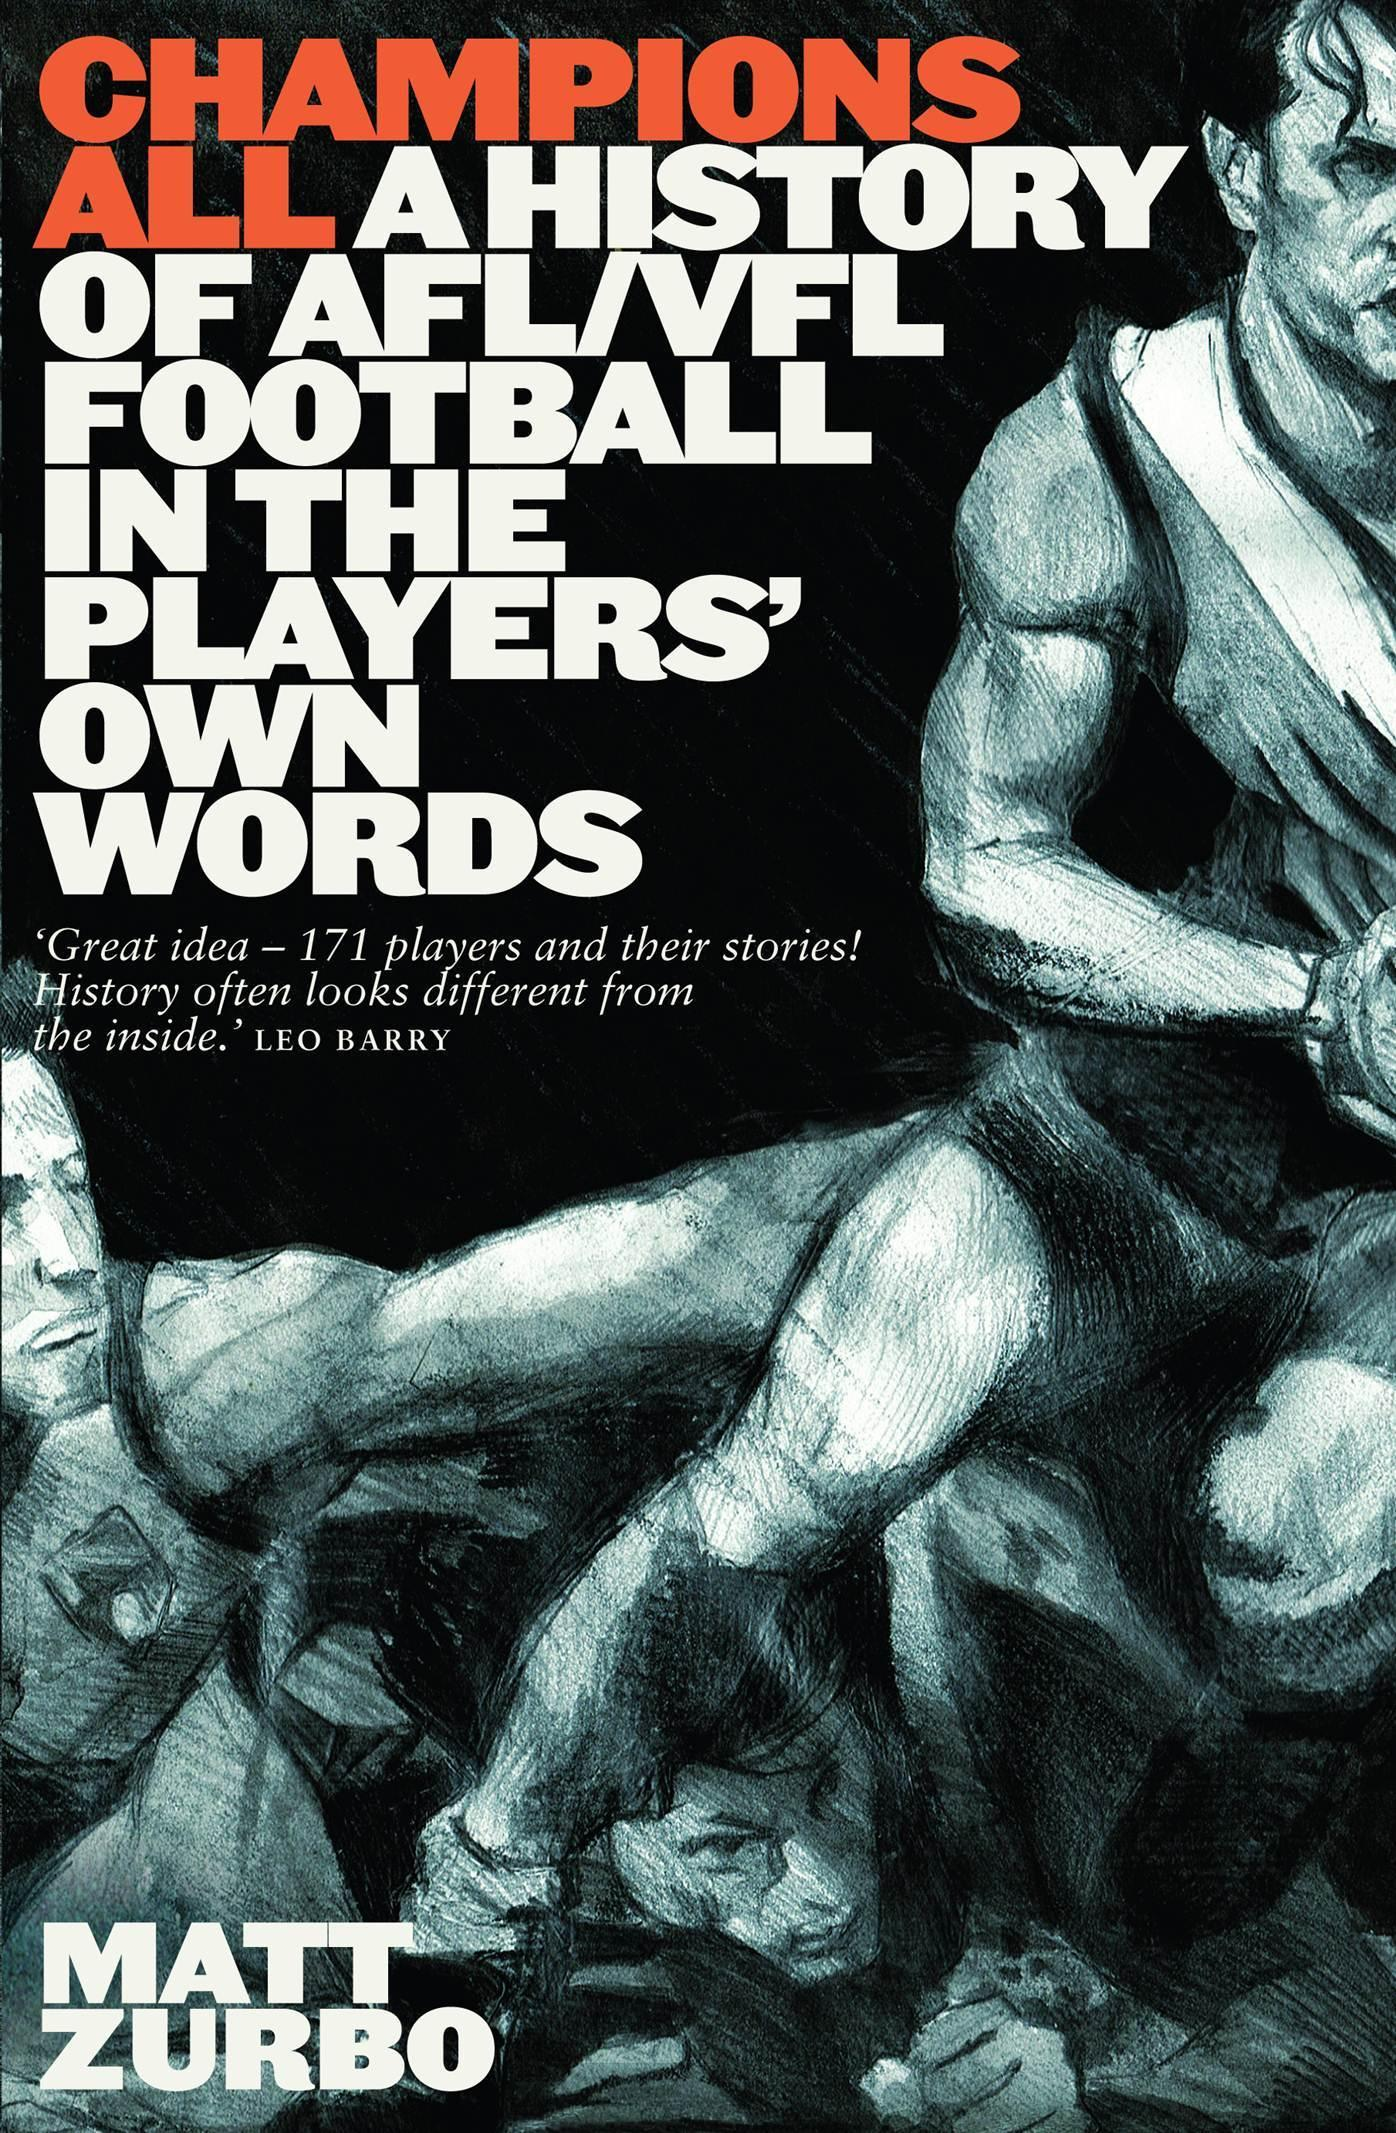 Champions All: A History of AFL/VFL Football in the Players' Own Words